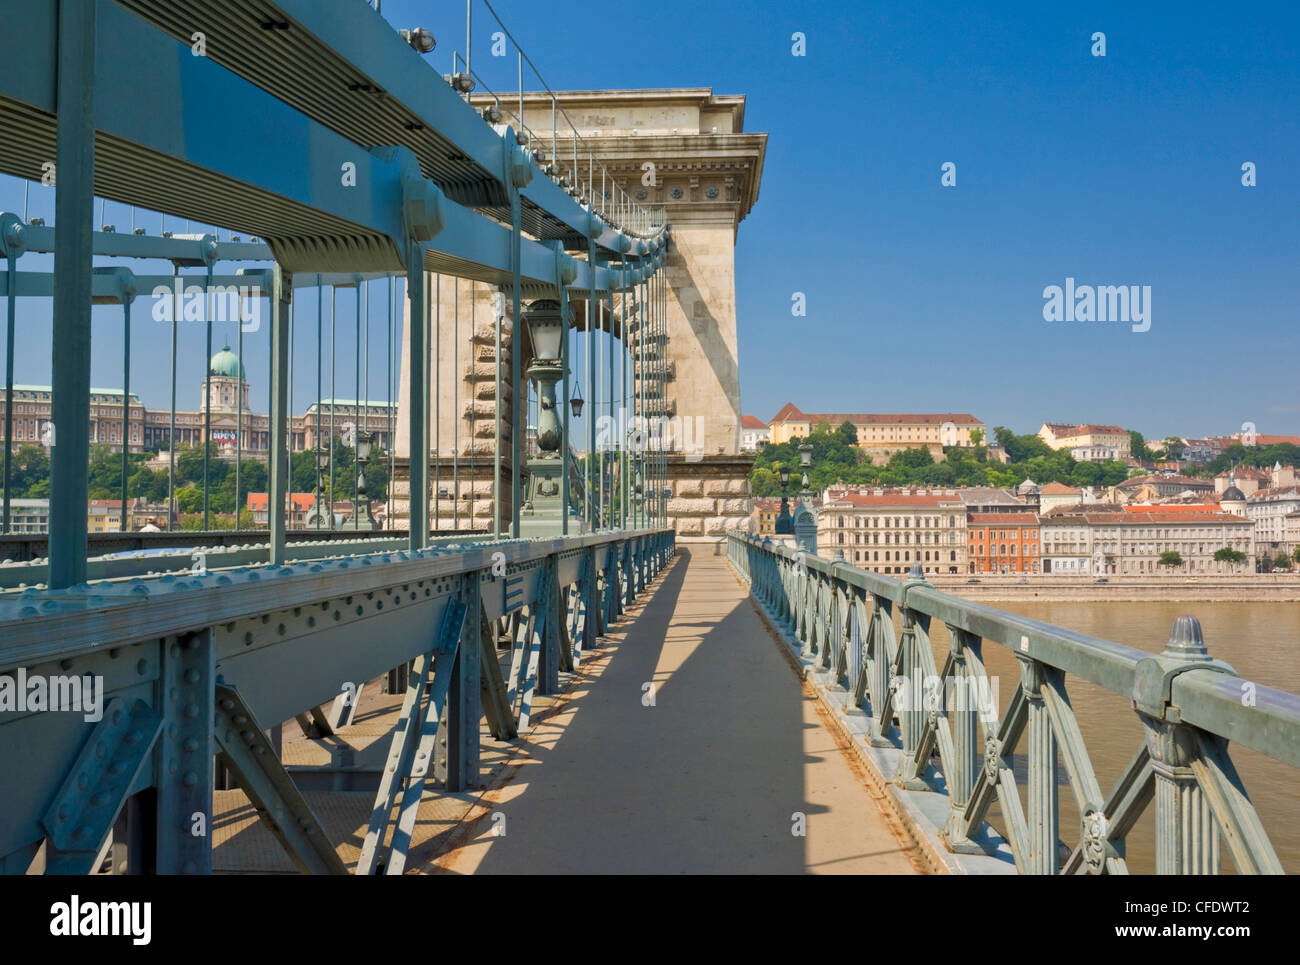 The Chain Bridge (Szechenyi Lanchid), over the River Danube, links Buda and Pest, Budapest, Hungary, Europe - Stock Image